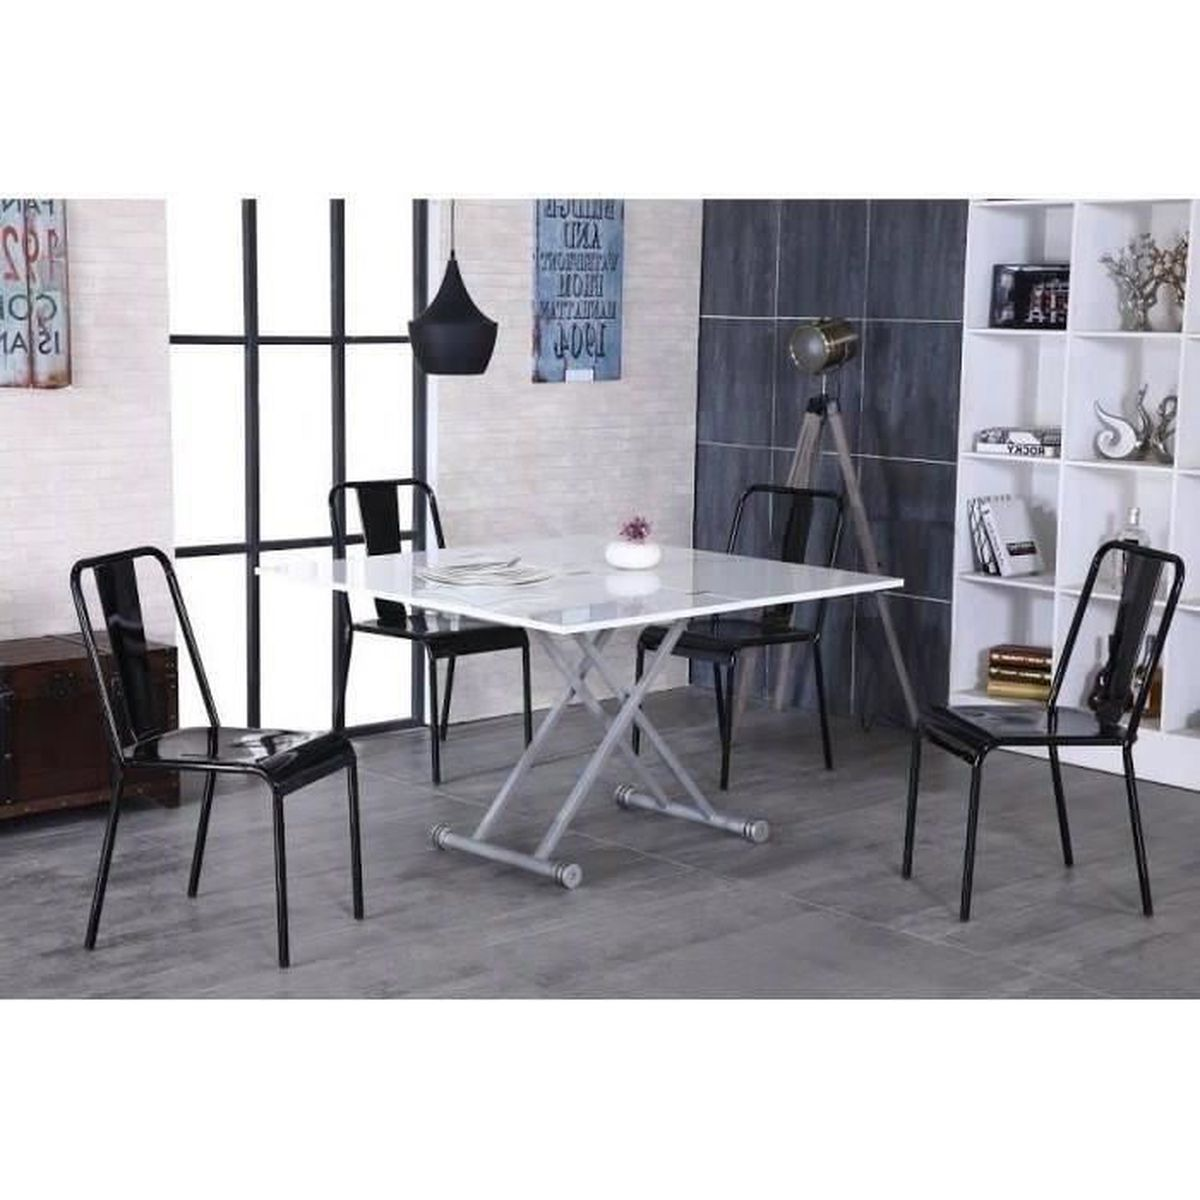 Table basse transformable en table a manger - Table basse transformable en table haute ...